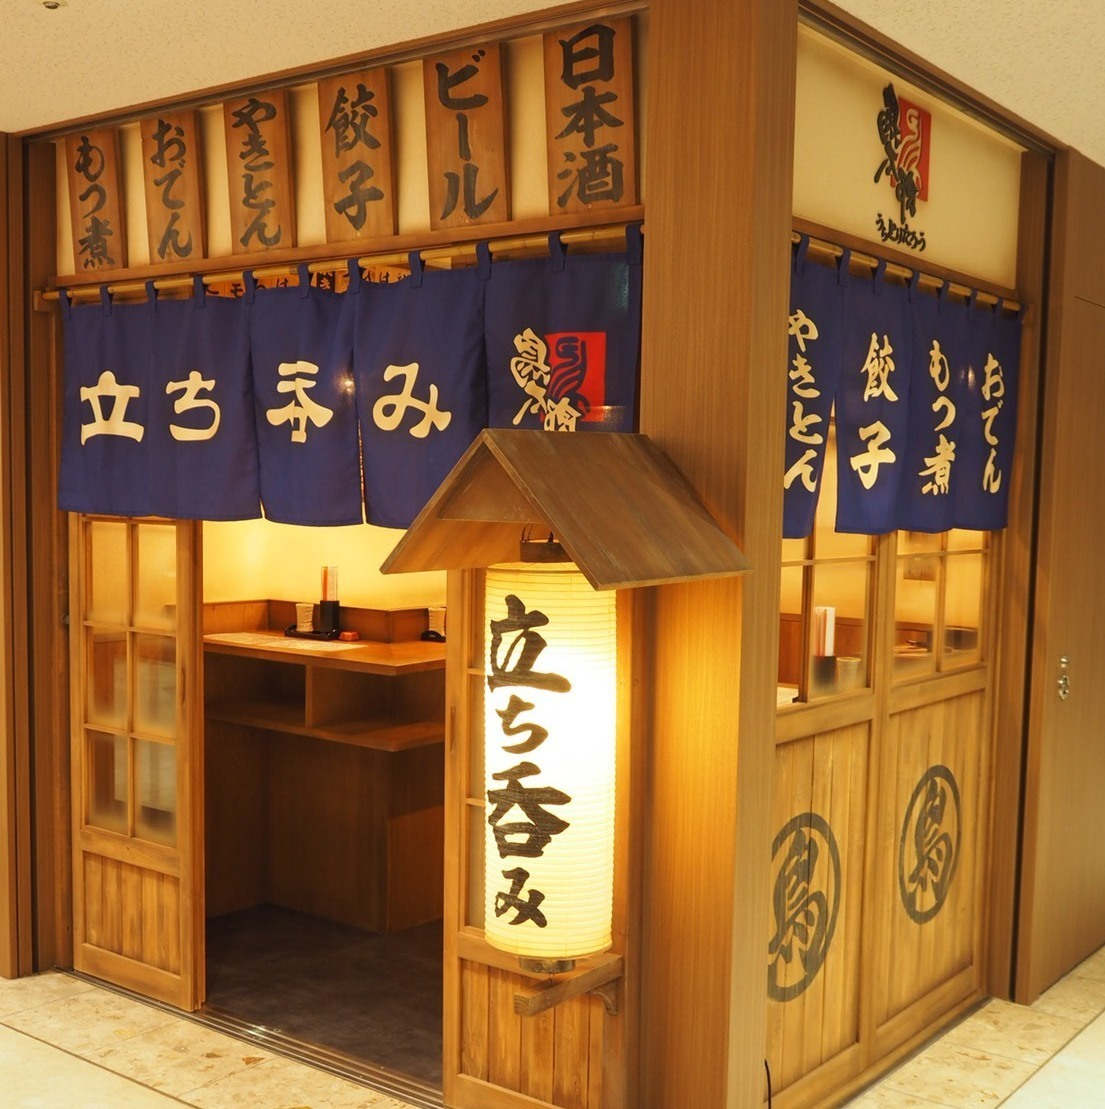 A drinking shop stands next to the entrance of Toritaro Sapporo shop and it opens on April 17! You can taste authentic yakitori of Toritaro with super cheap ♪